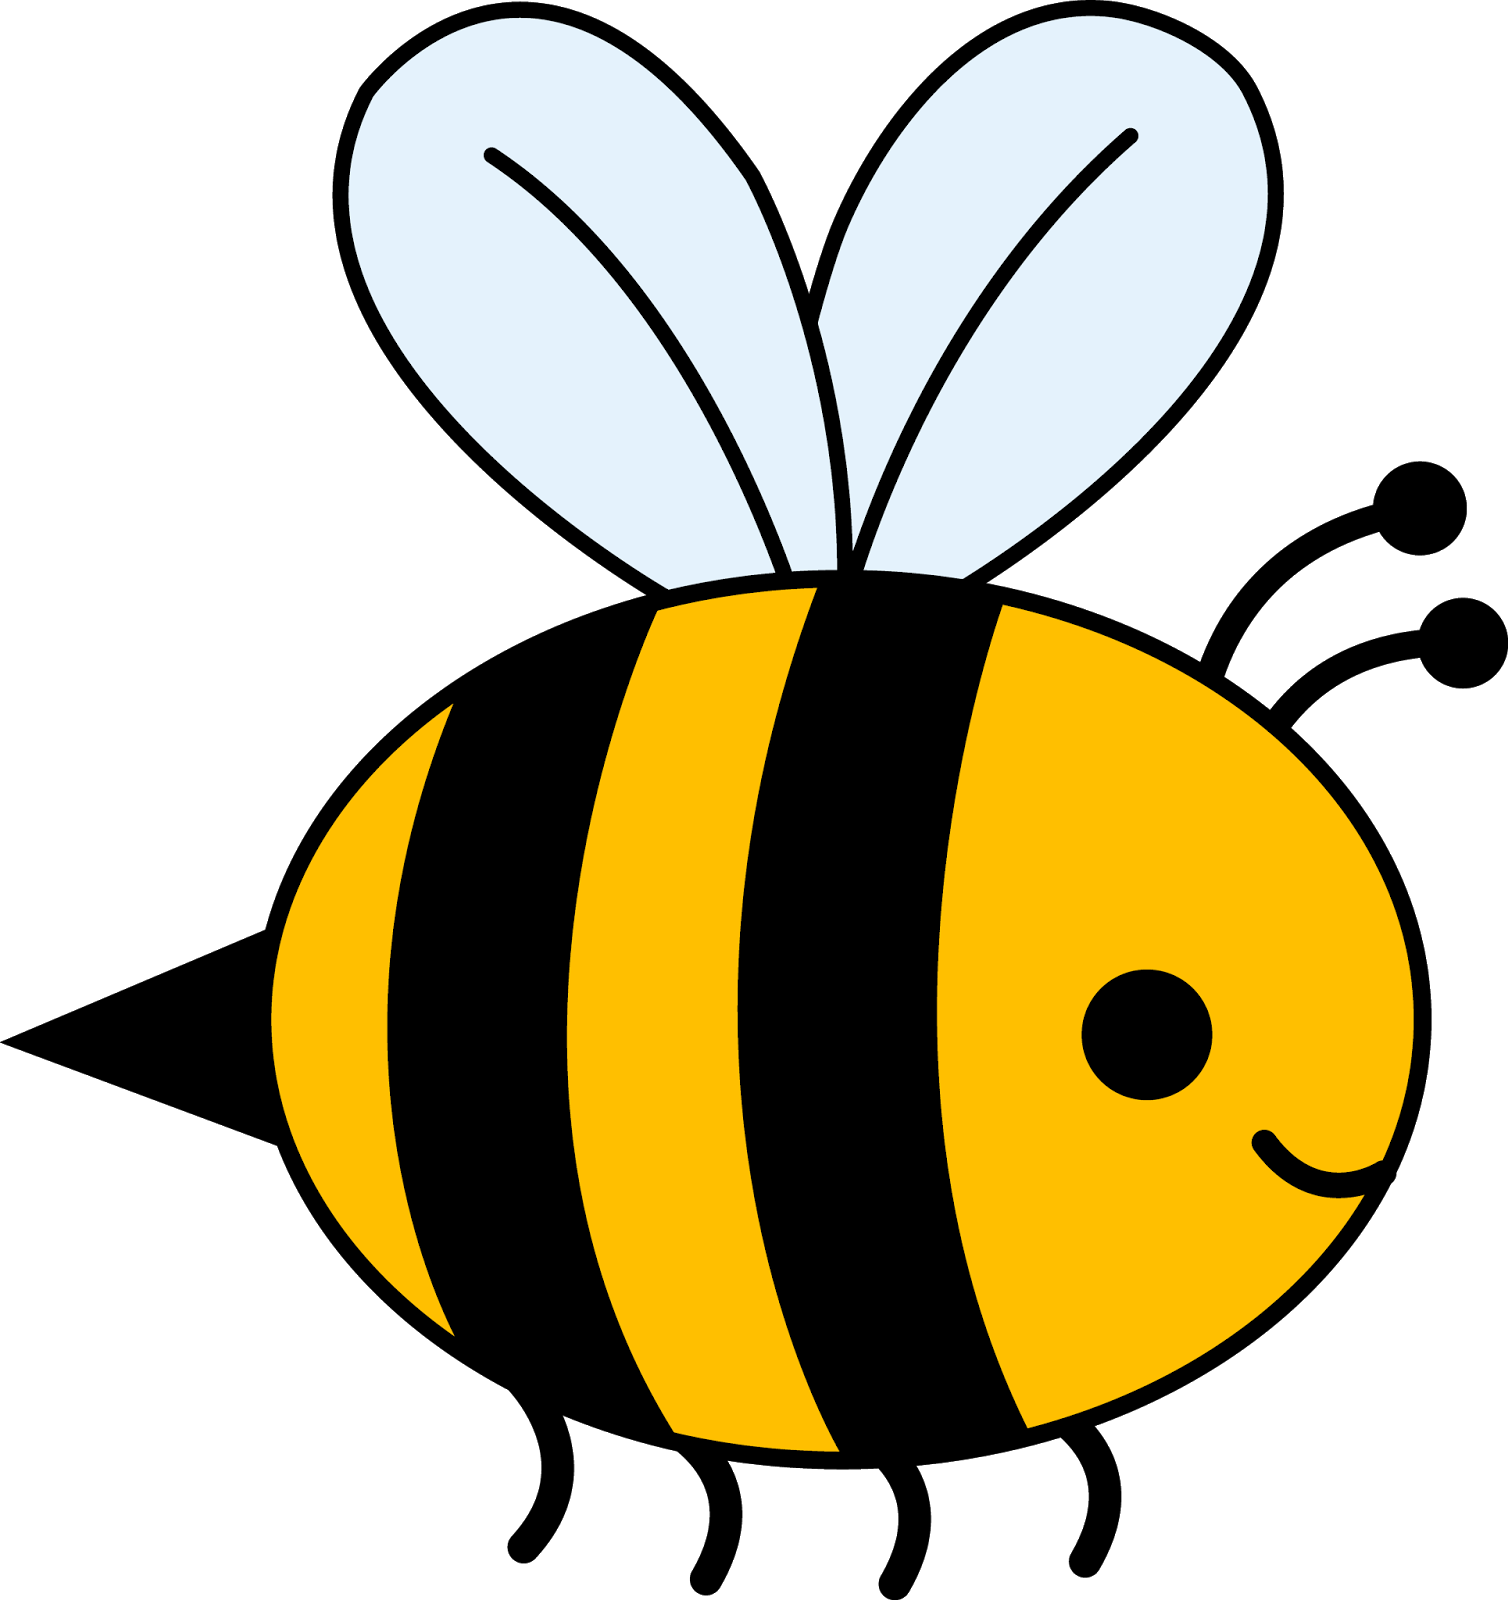 Bee with flower clipart image freeuse library Bee Clipart Black And White | Clipart Panda - Free Clipart Images ... image freeuse library